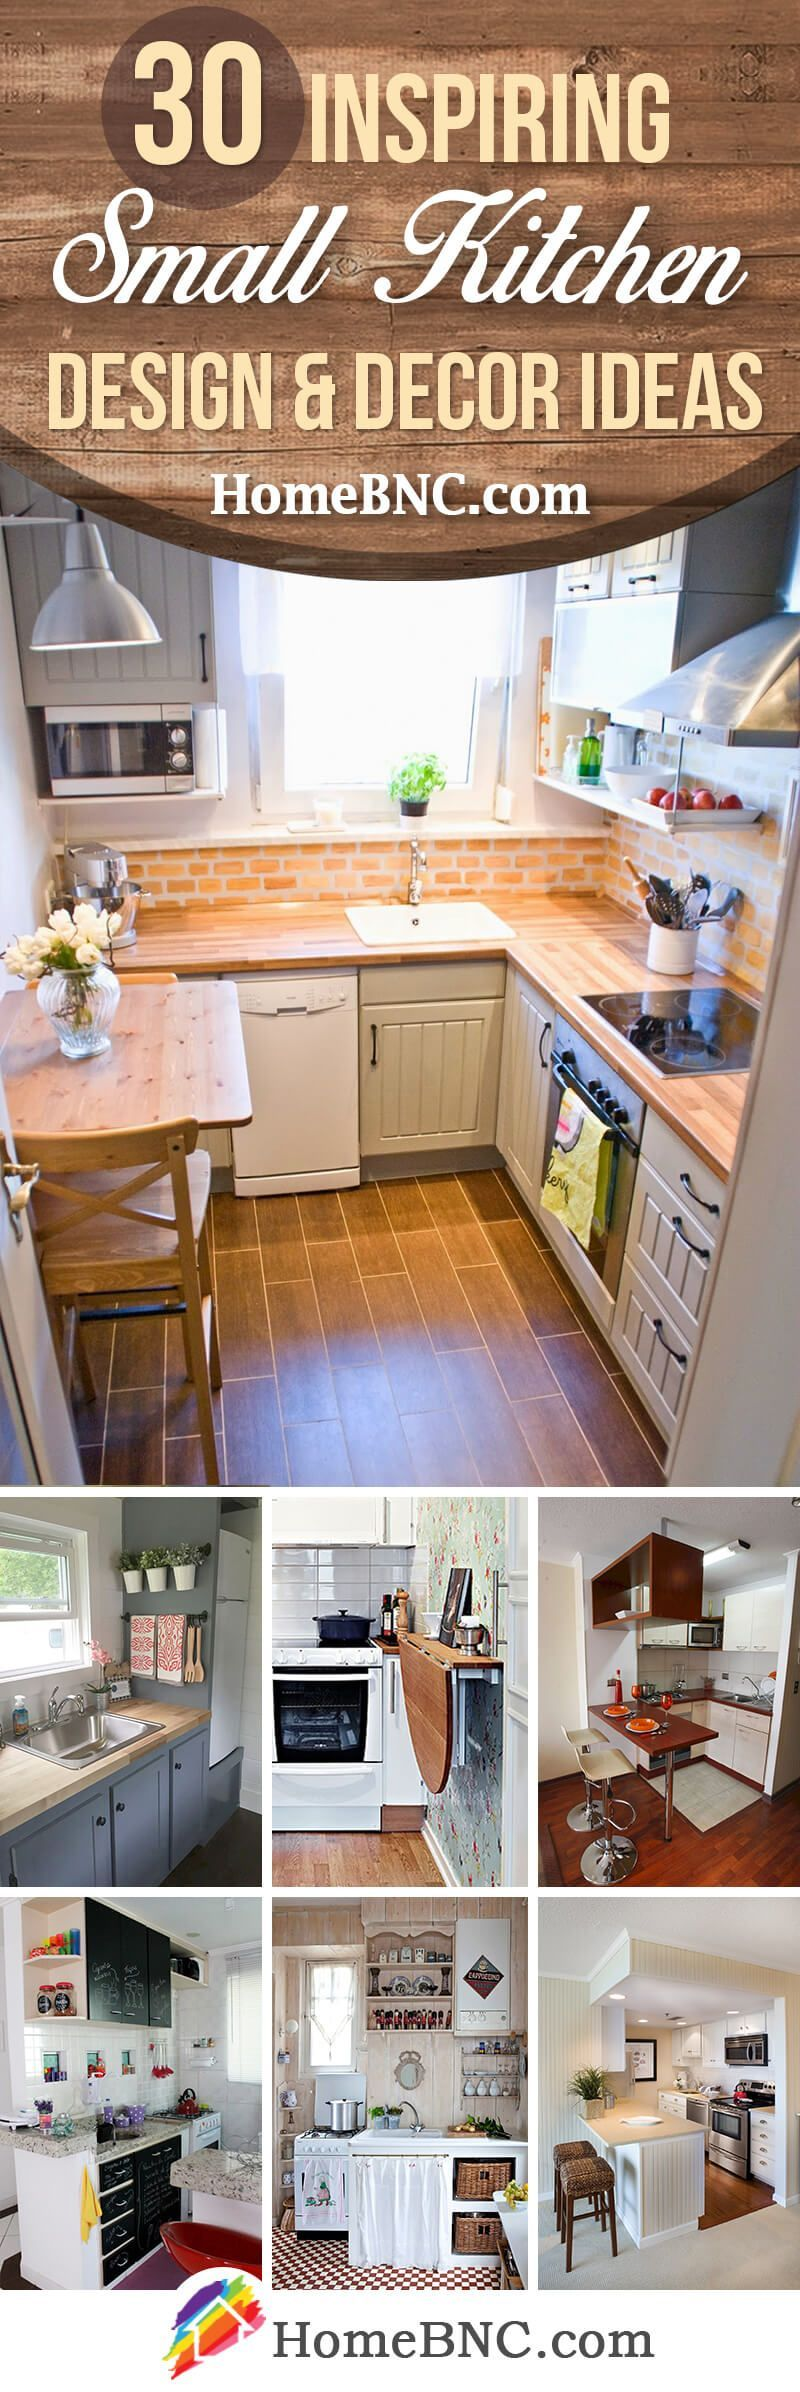 30 Nifty Small Kitchen Design And Decor Ideas To Transform Your Cooking Space Small Kitchen Decor Country Kitchen Decor Kitchen Design